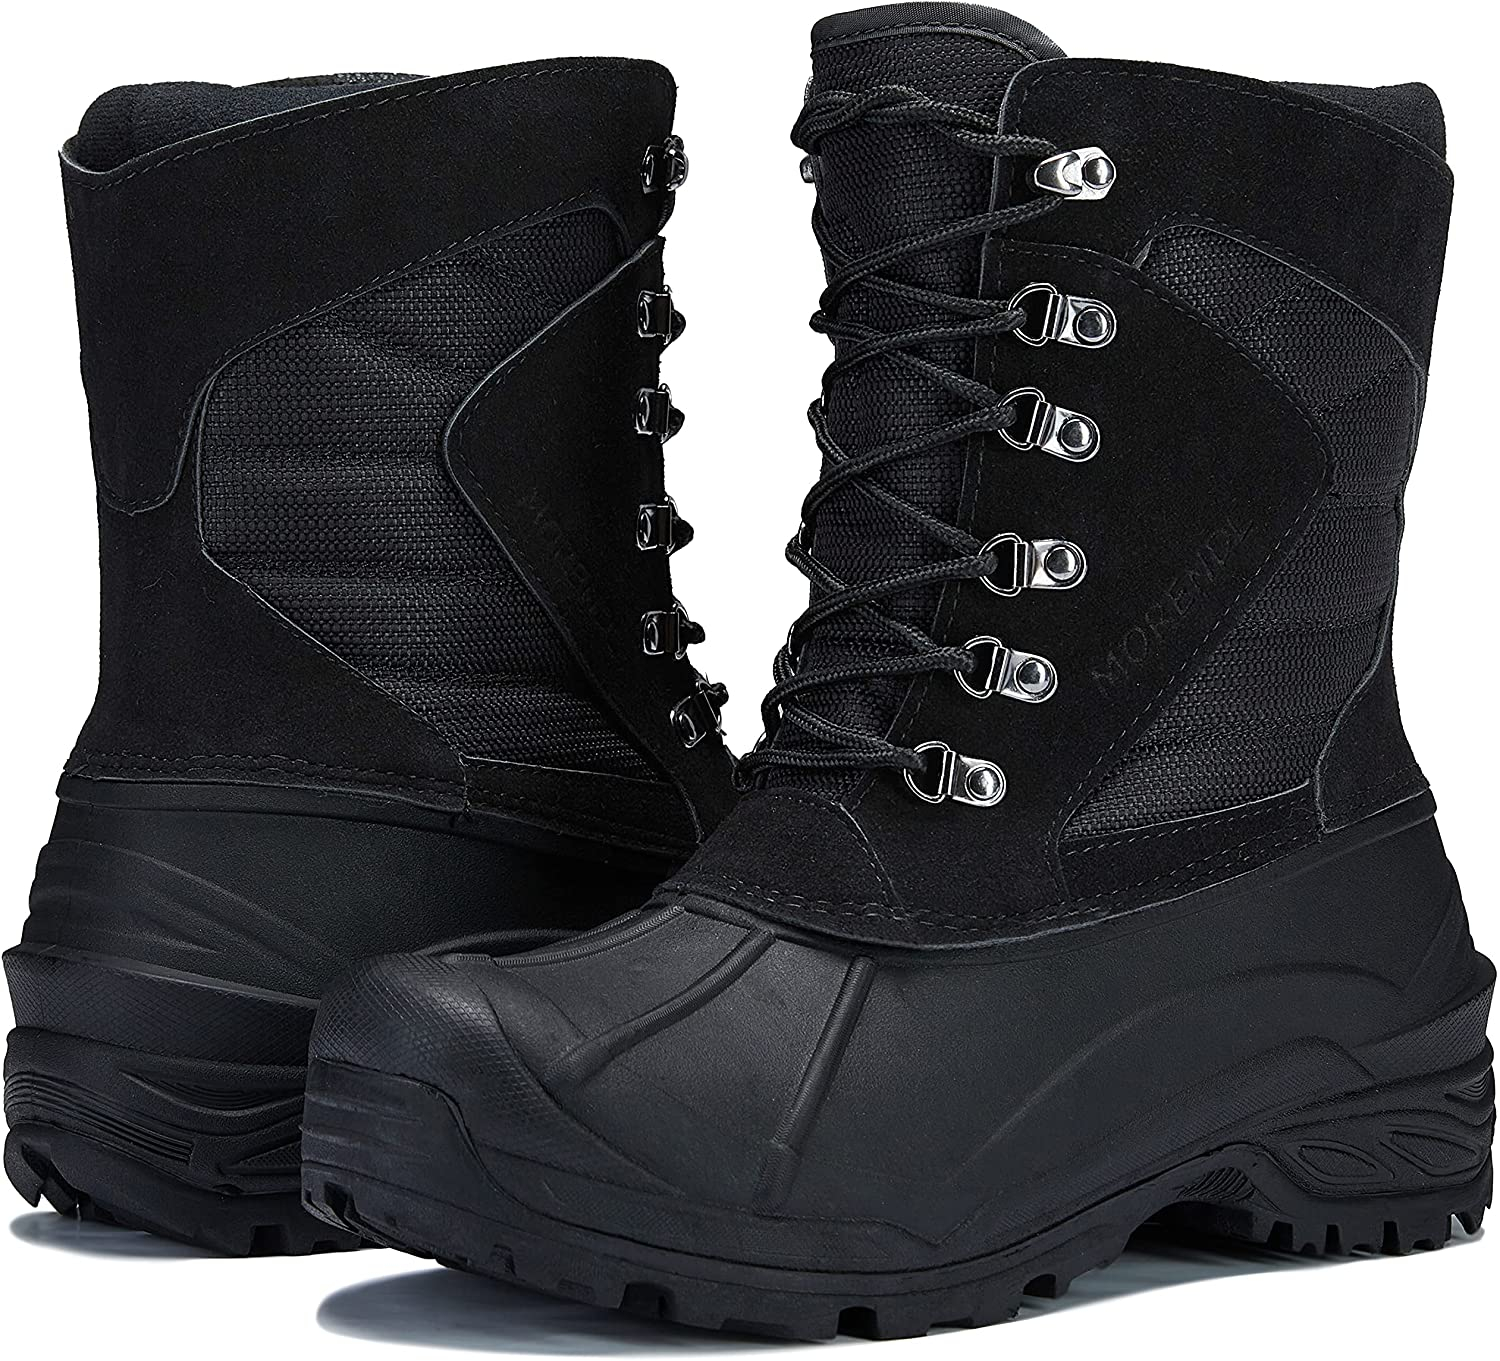 MORENDL Men's Winter Snow Popular Quantity limited brand in the world Boots Insulated So Waterproof Non-Slip